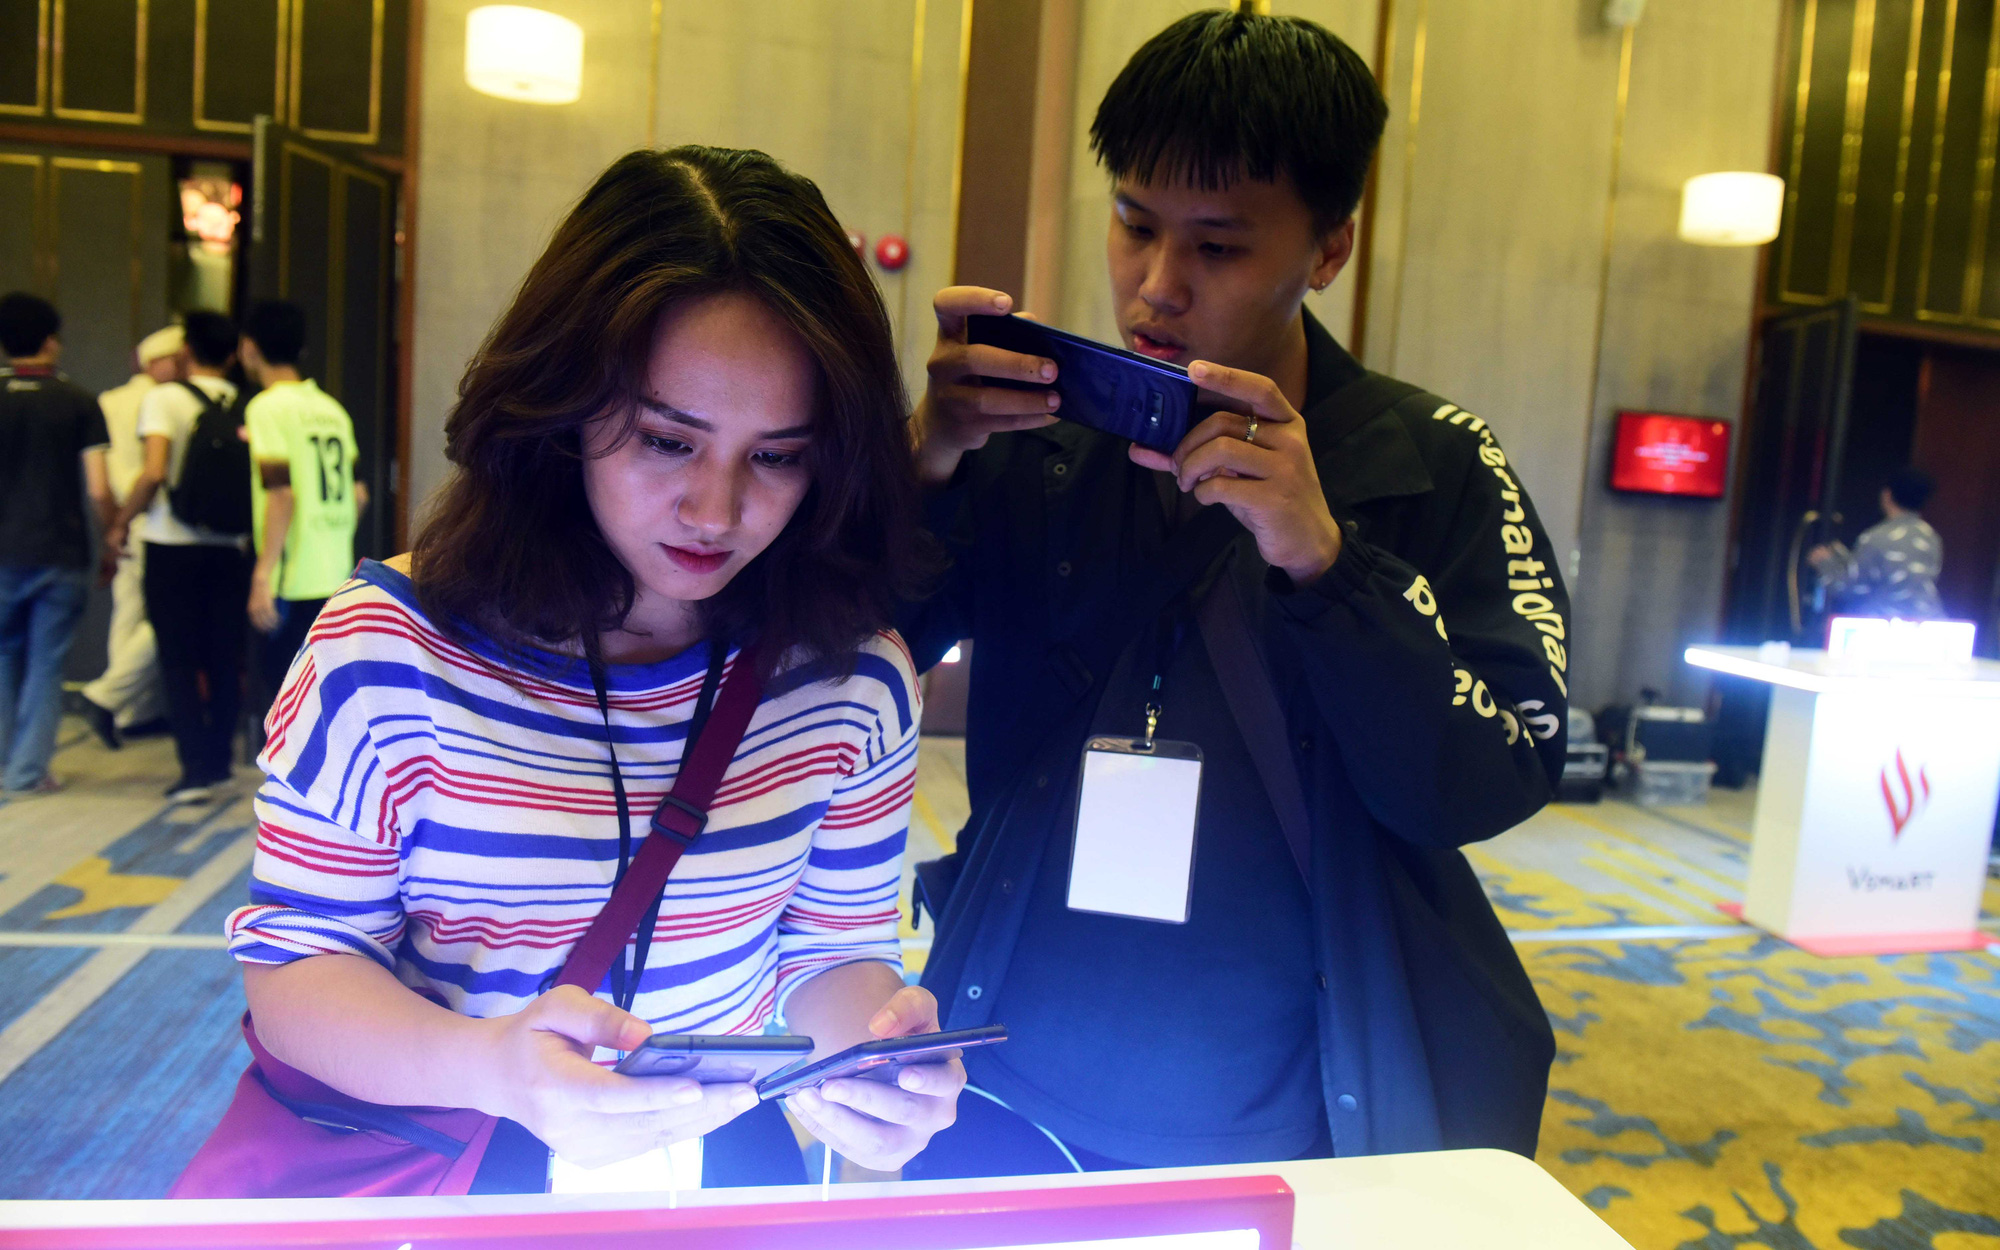 Vingroup's withdrawal from smartphone sector hints at Vietnamese handset brands' unforeseeable misadventure